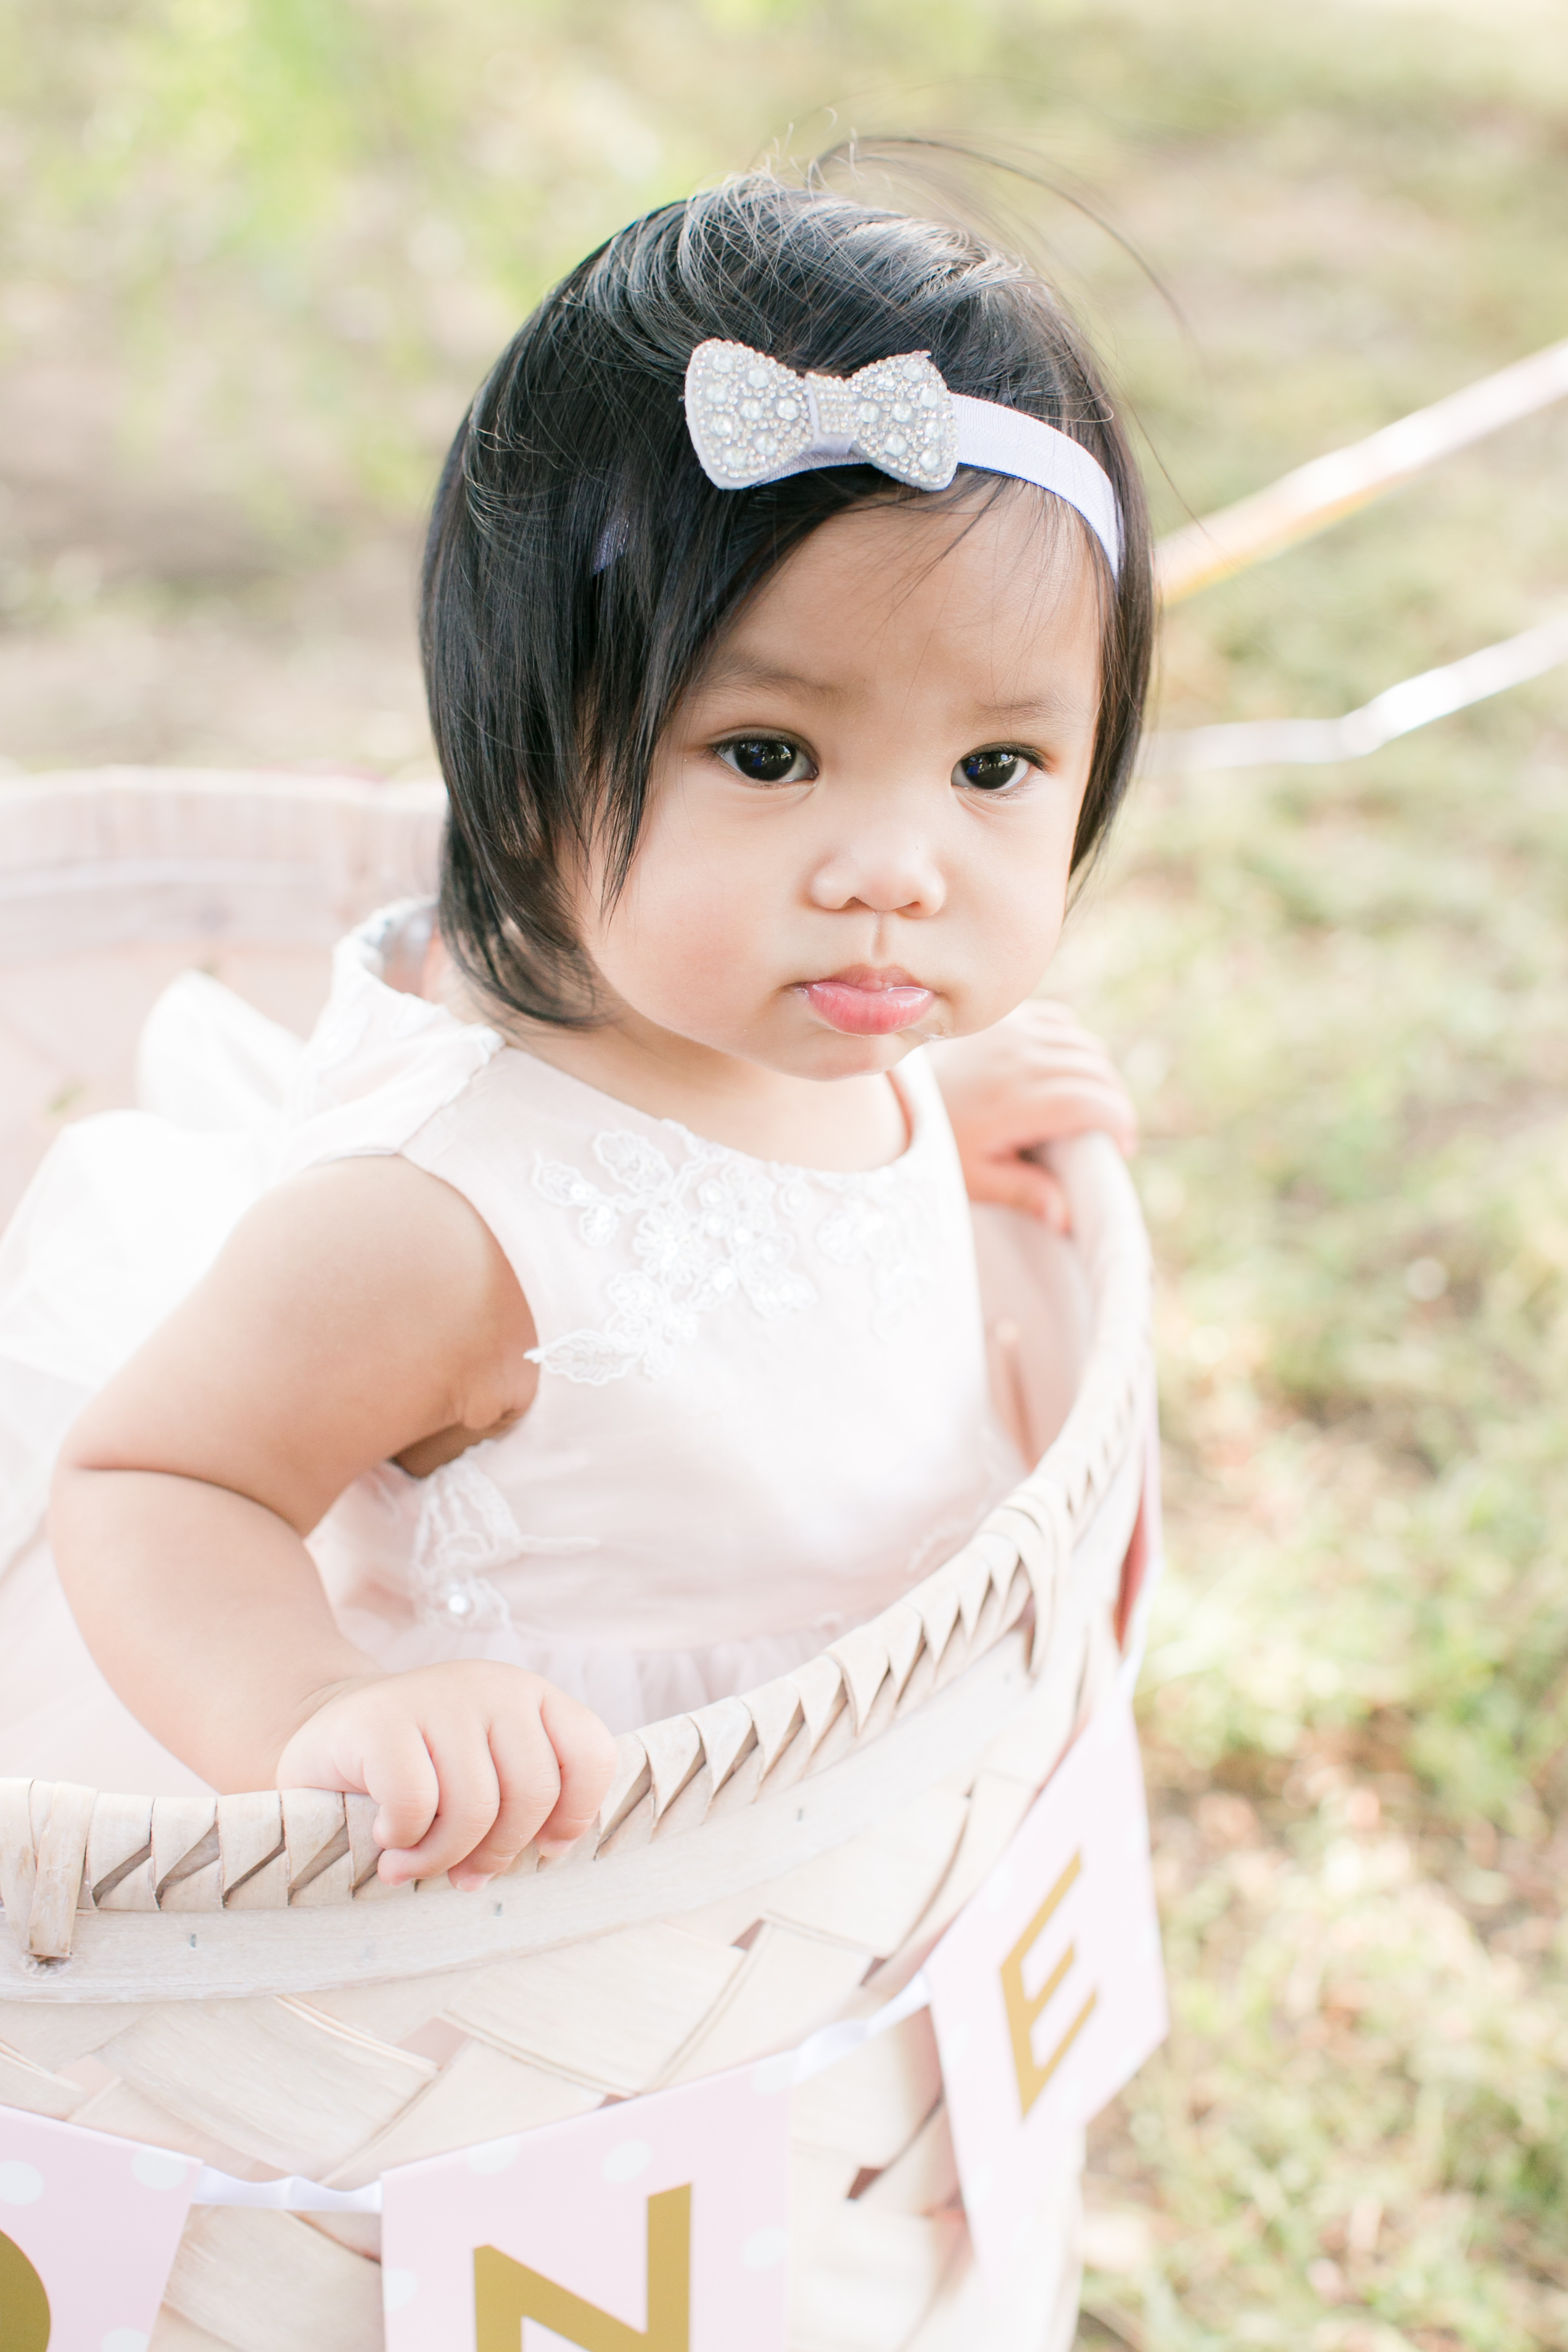 NEMA Photography J.Pham045 - Baby Justine // One year old portraits